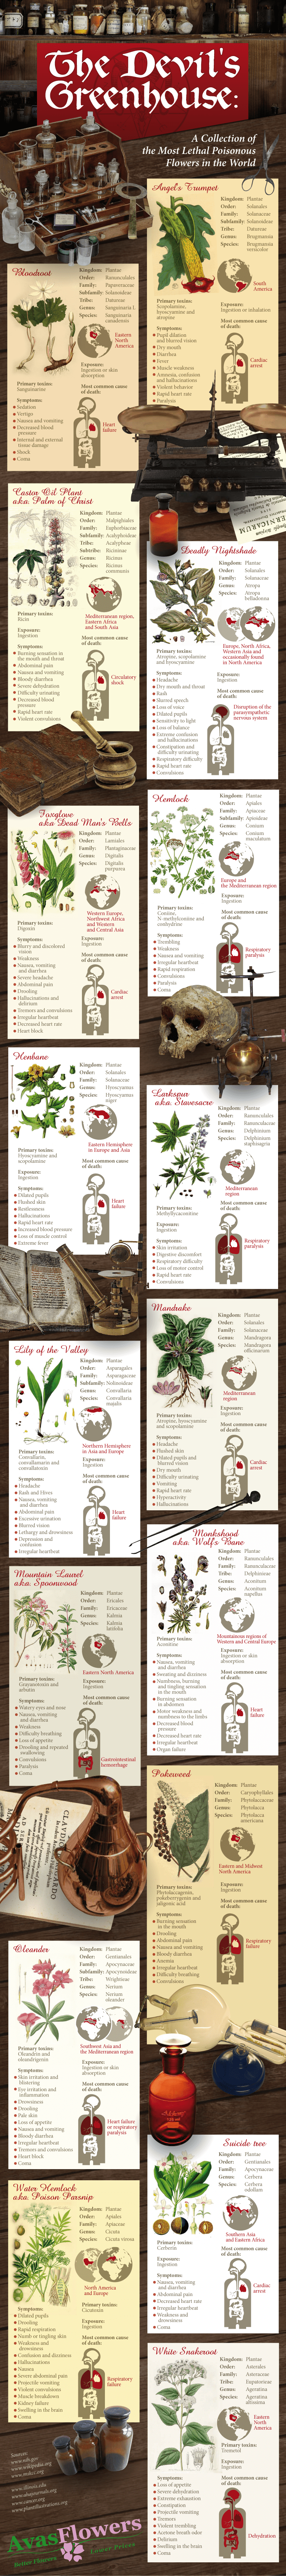 Infographic - The Devil's Greenhouse